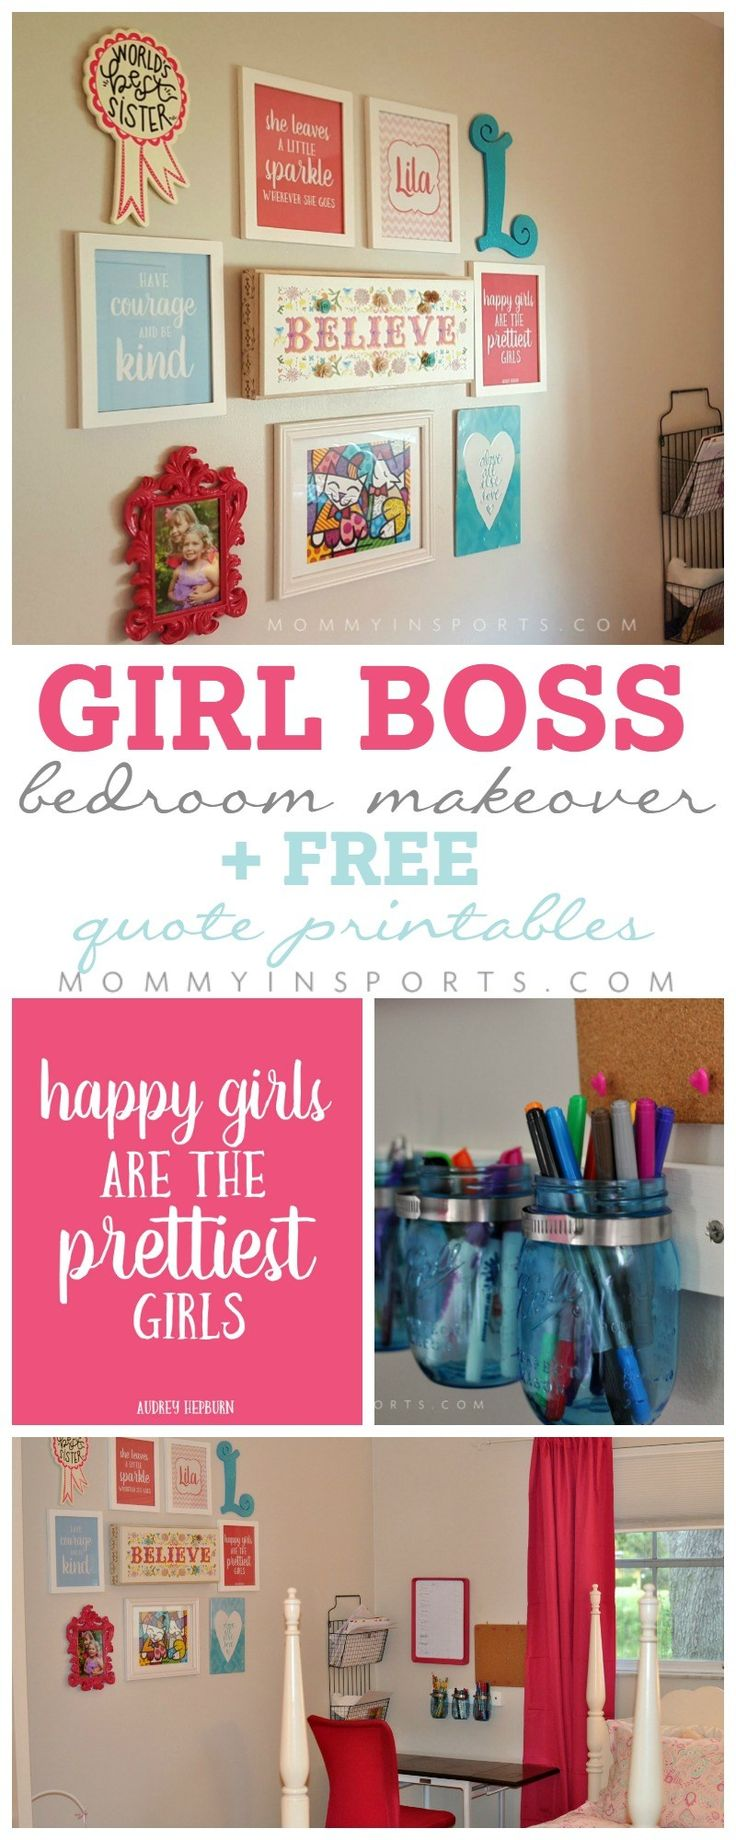 Is your daughter looking for a big girl room? Try this girl boss makeover with FREE quote printable pack! Perfect to inspire your budding tween! All quotes pictured are included PLUS more!